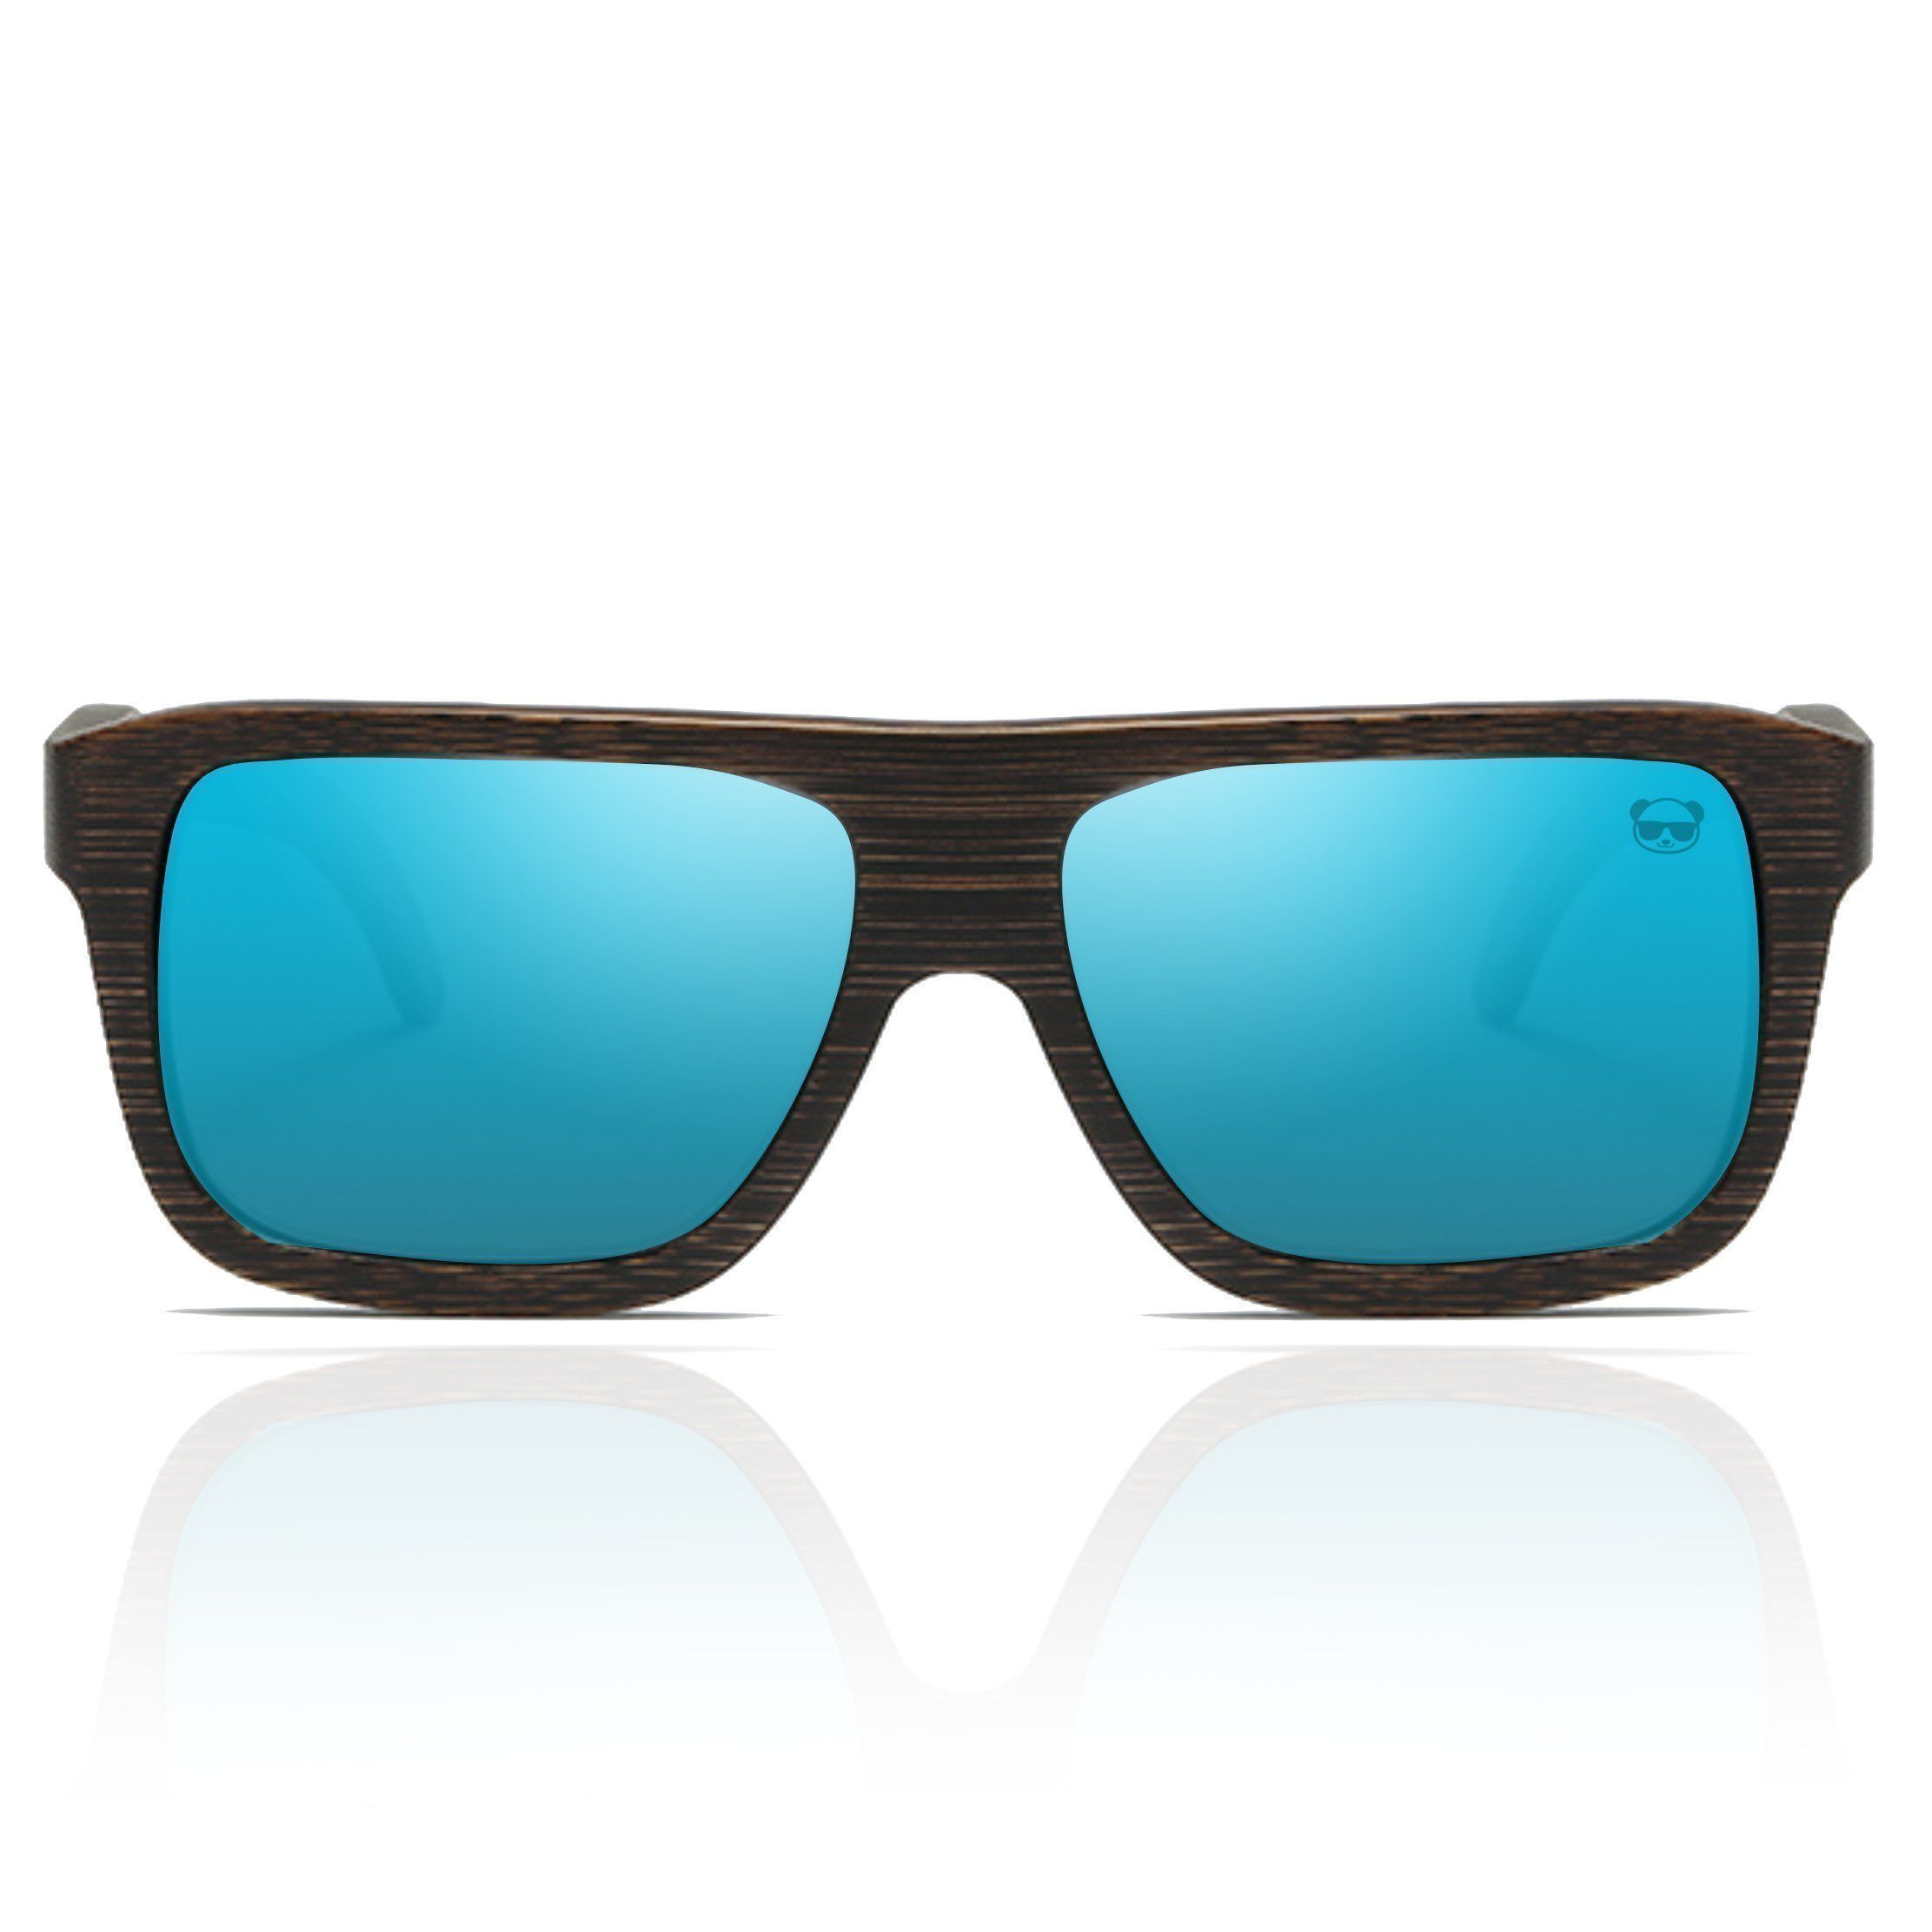 Kingston Sunglasses FreshForPandas Blue